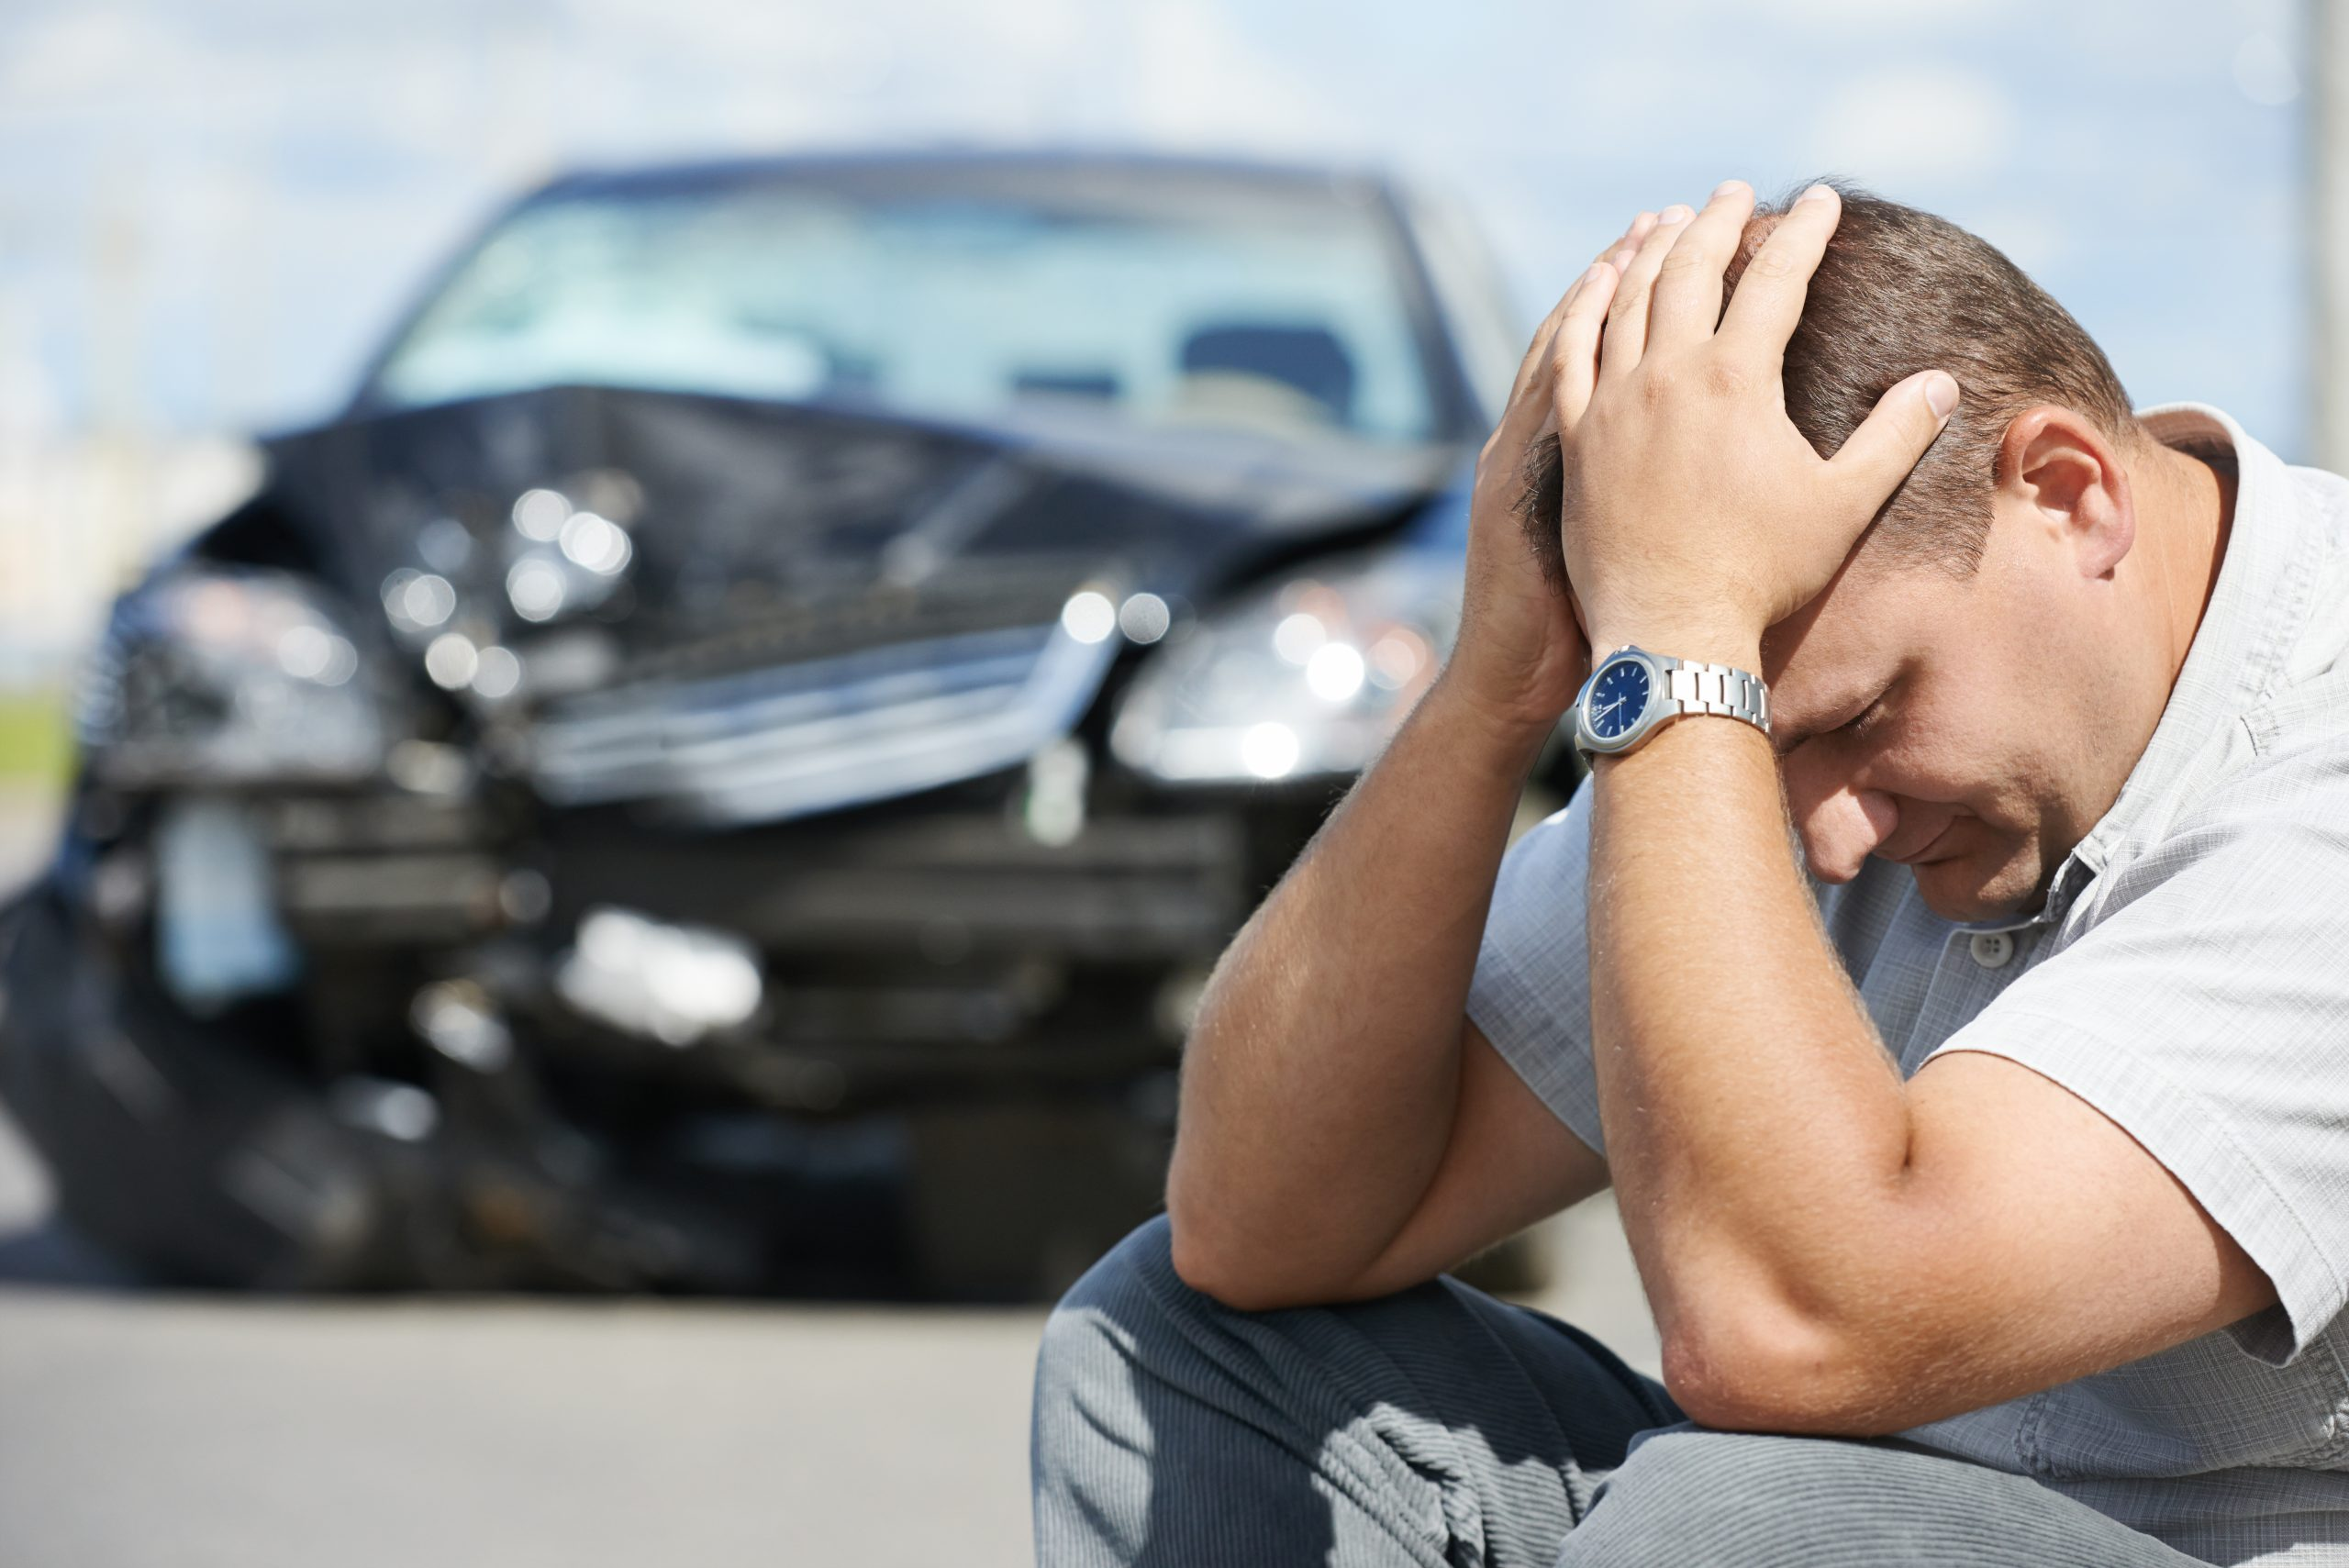 Injured by a Distracted Driver? When to Seek A Personal Injury Attorney